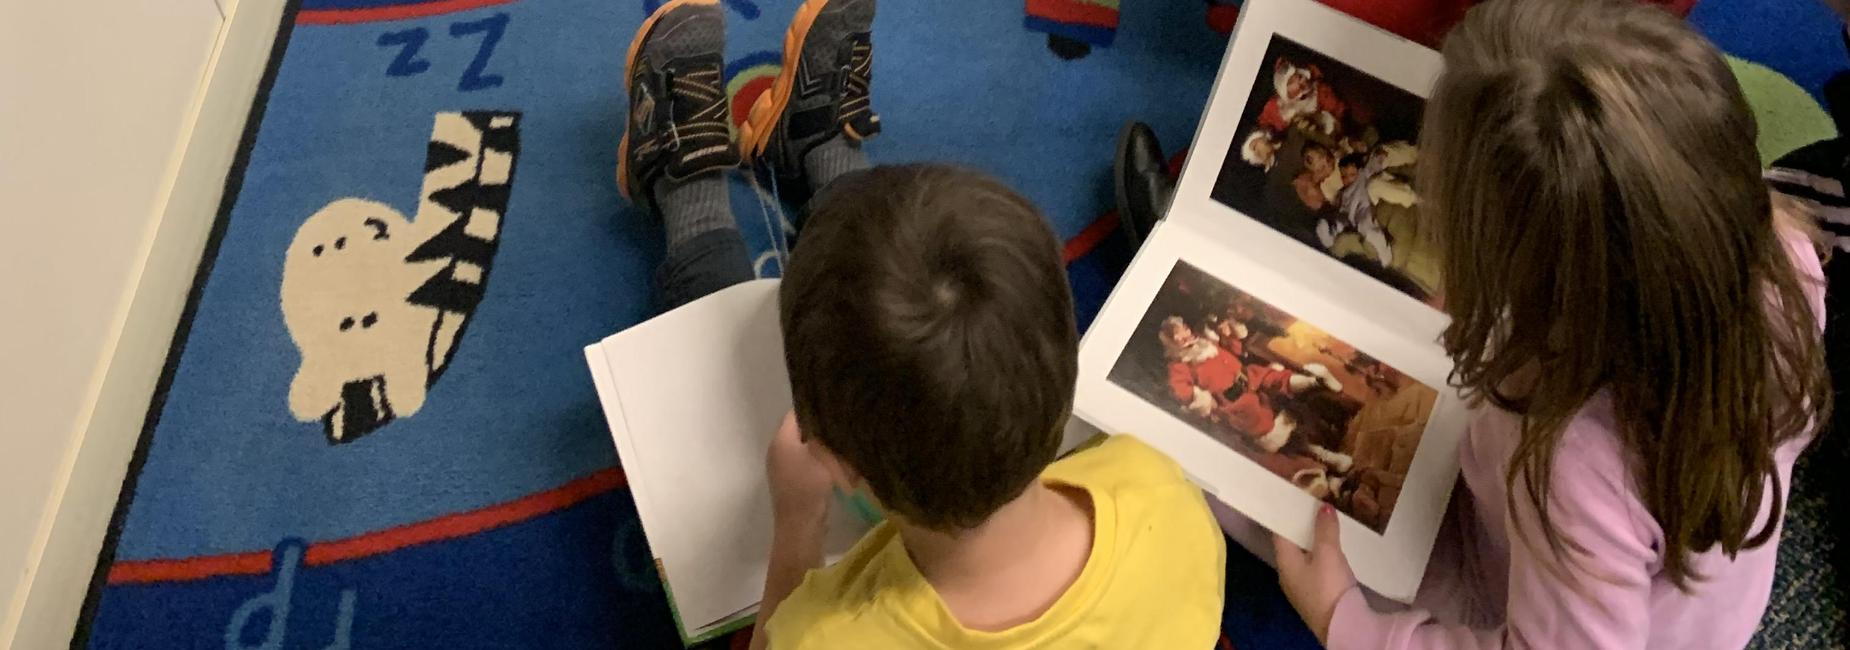 reading pictures in books